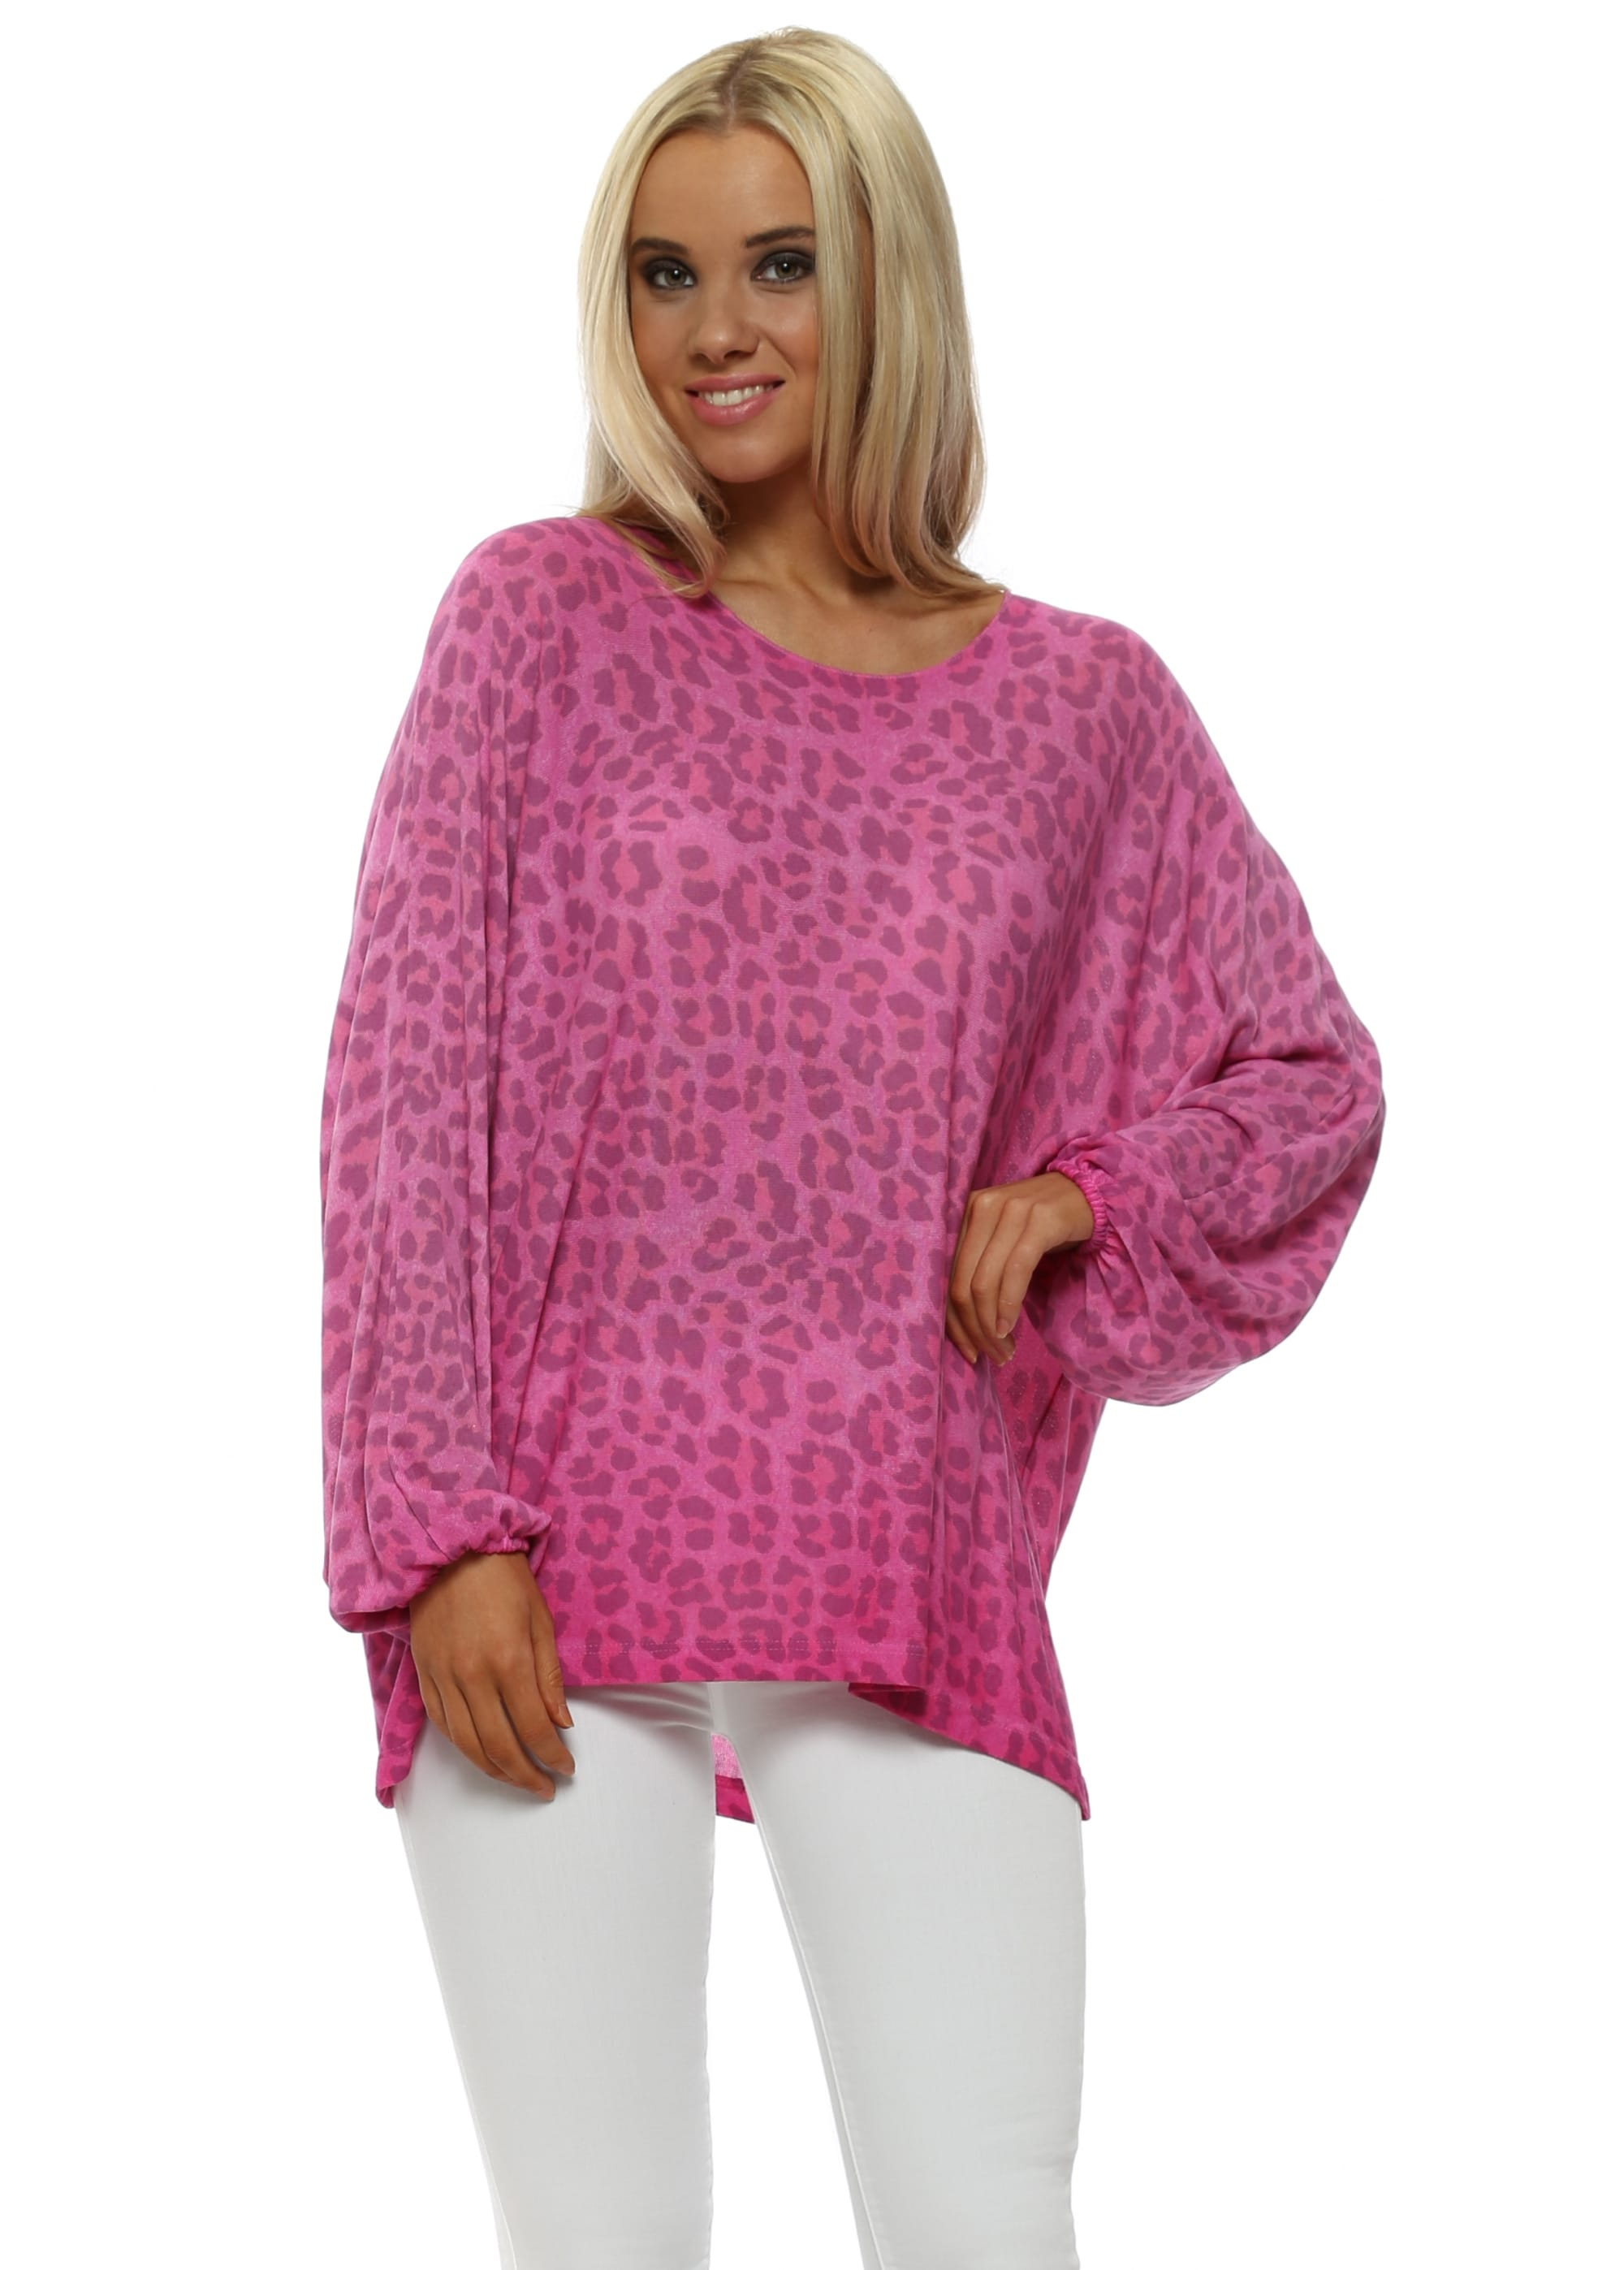 2d4afe54d1f Made In Italy Hot Pink Leopard Print Relaxed Top